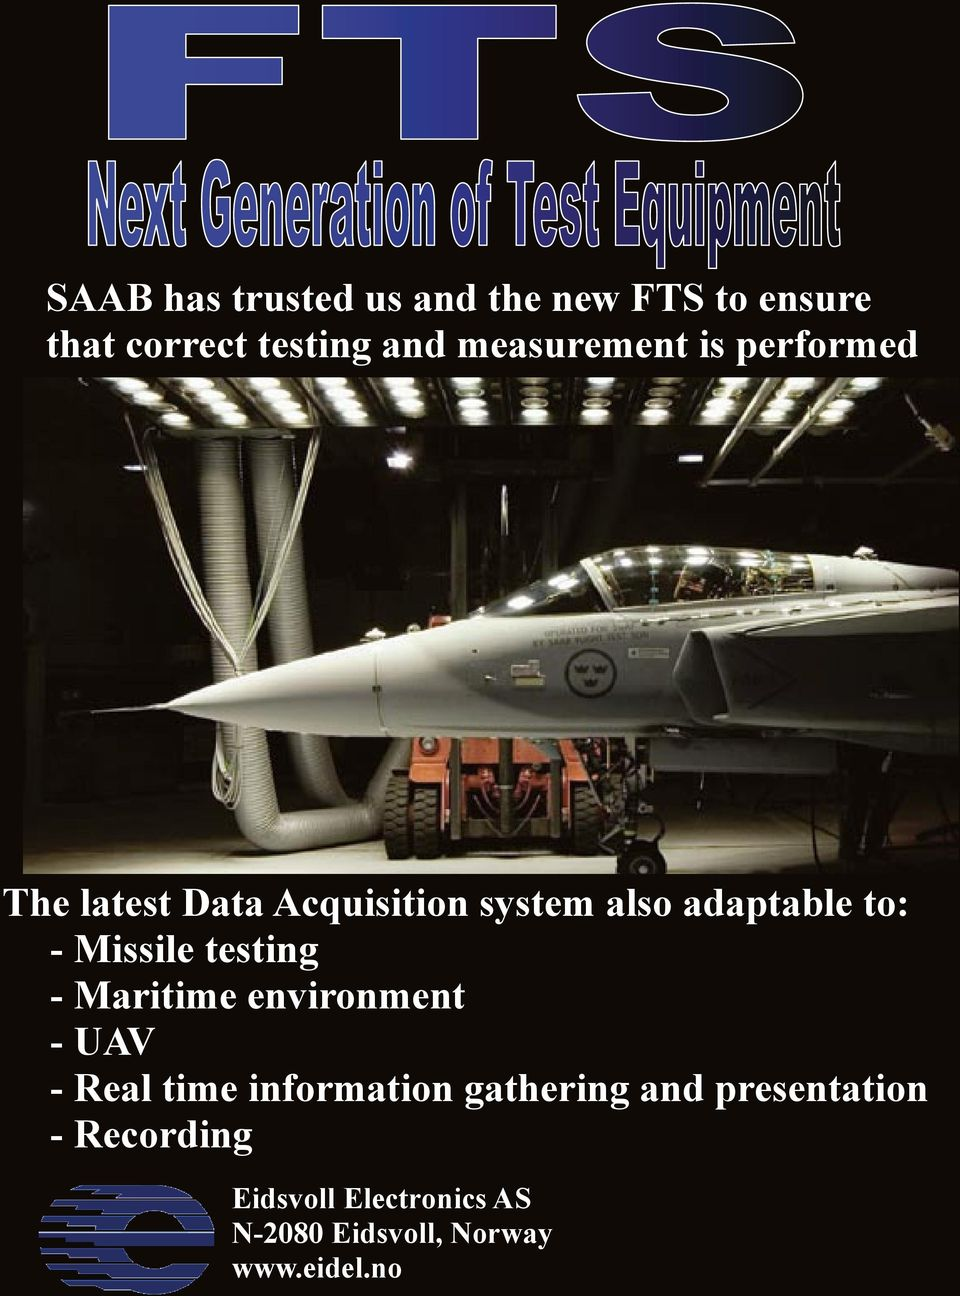 - Missile testing Missile testing - Maritime environment Maritime environment The - UAV UAV latest Data Acquisition system also adaptable to: Real time information gathering and presentation - Real